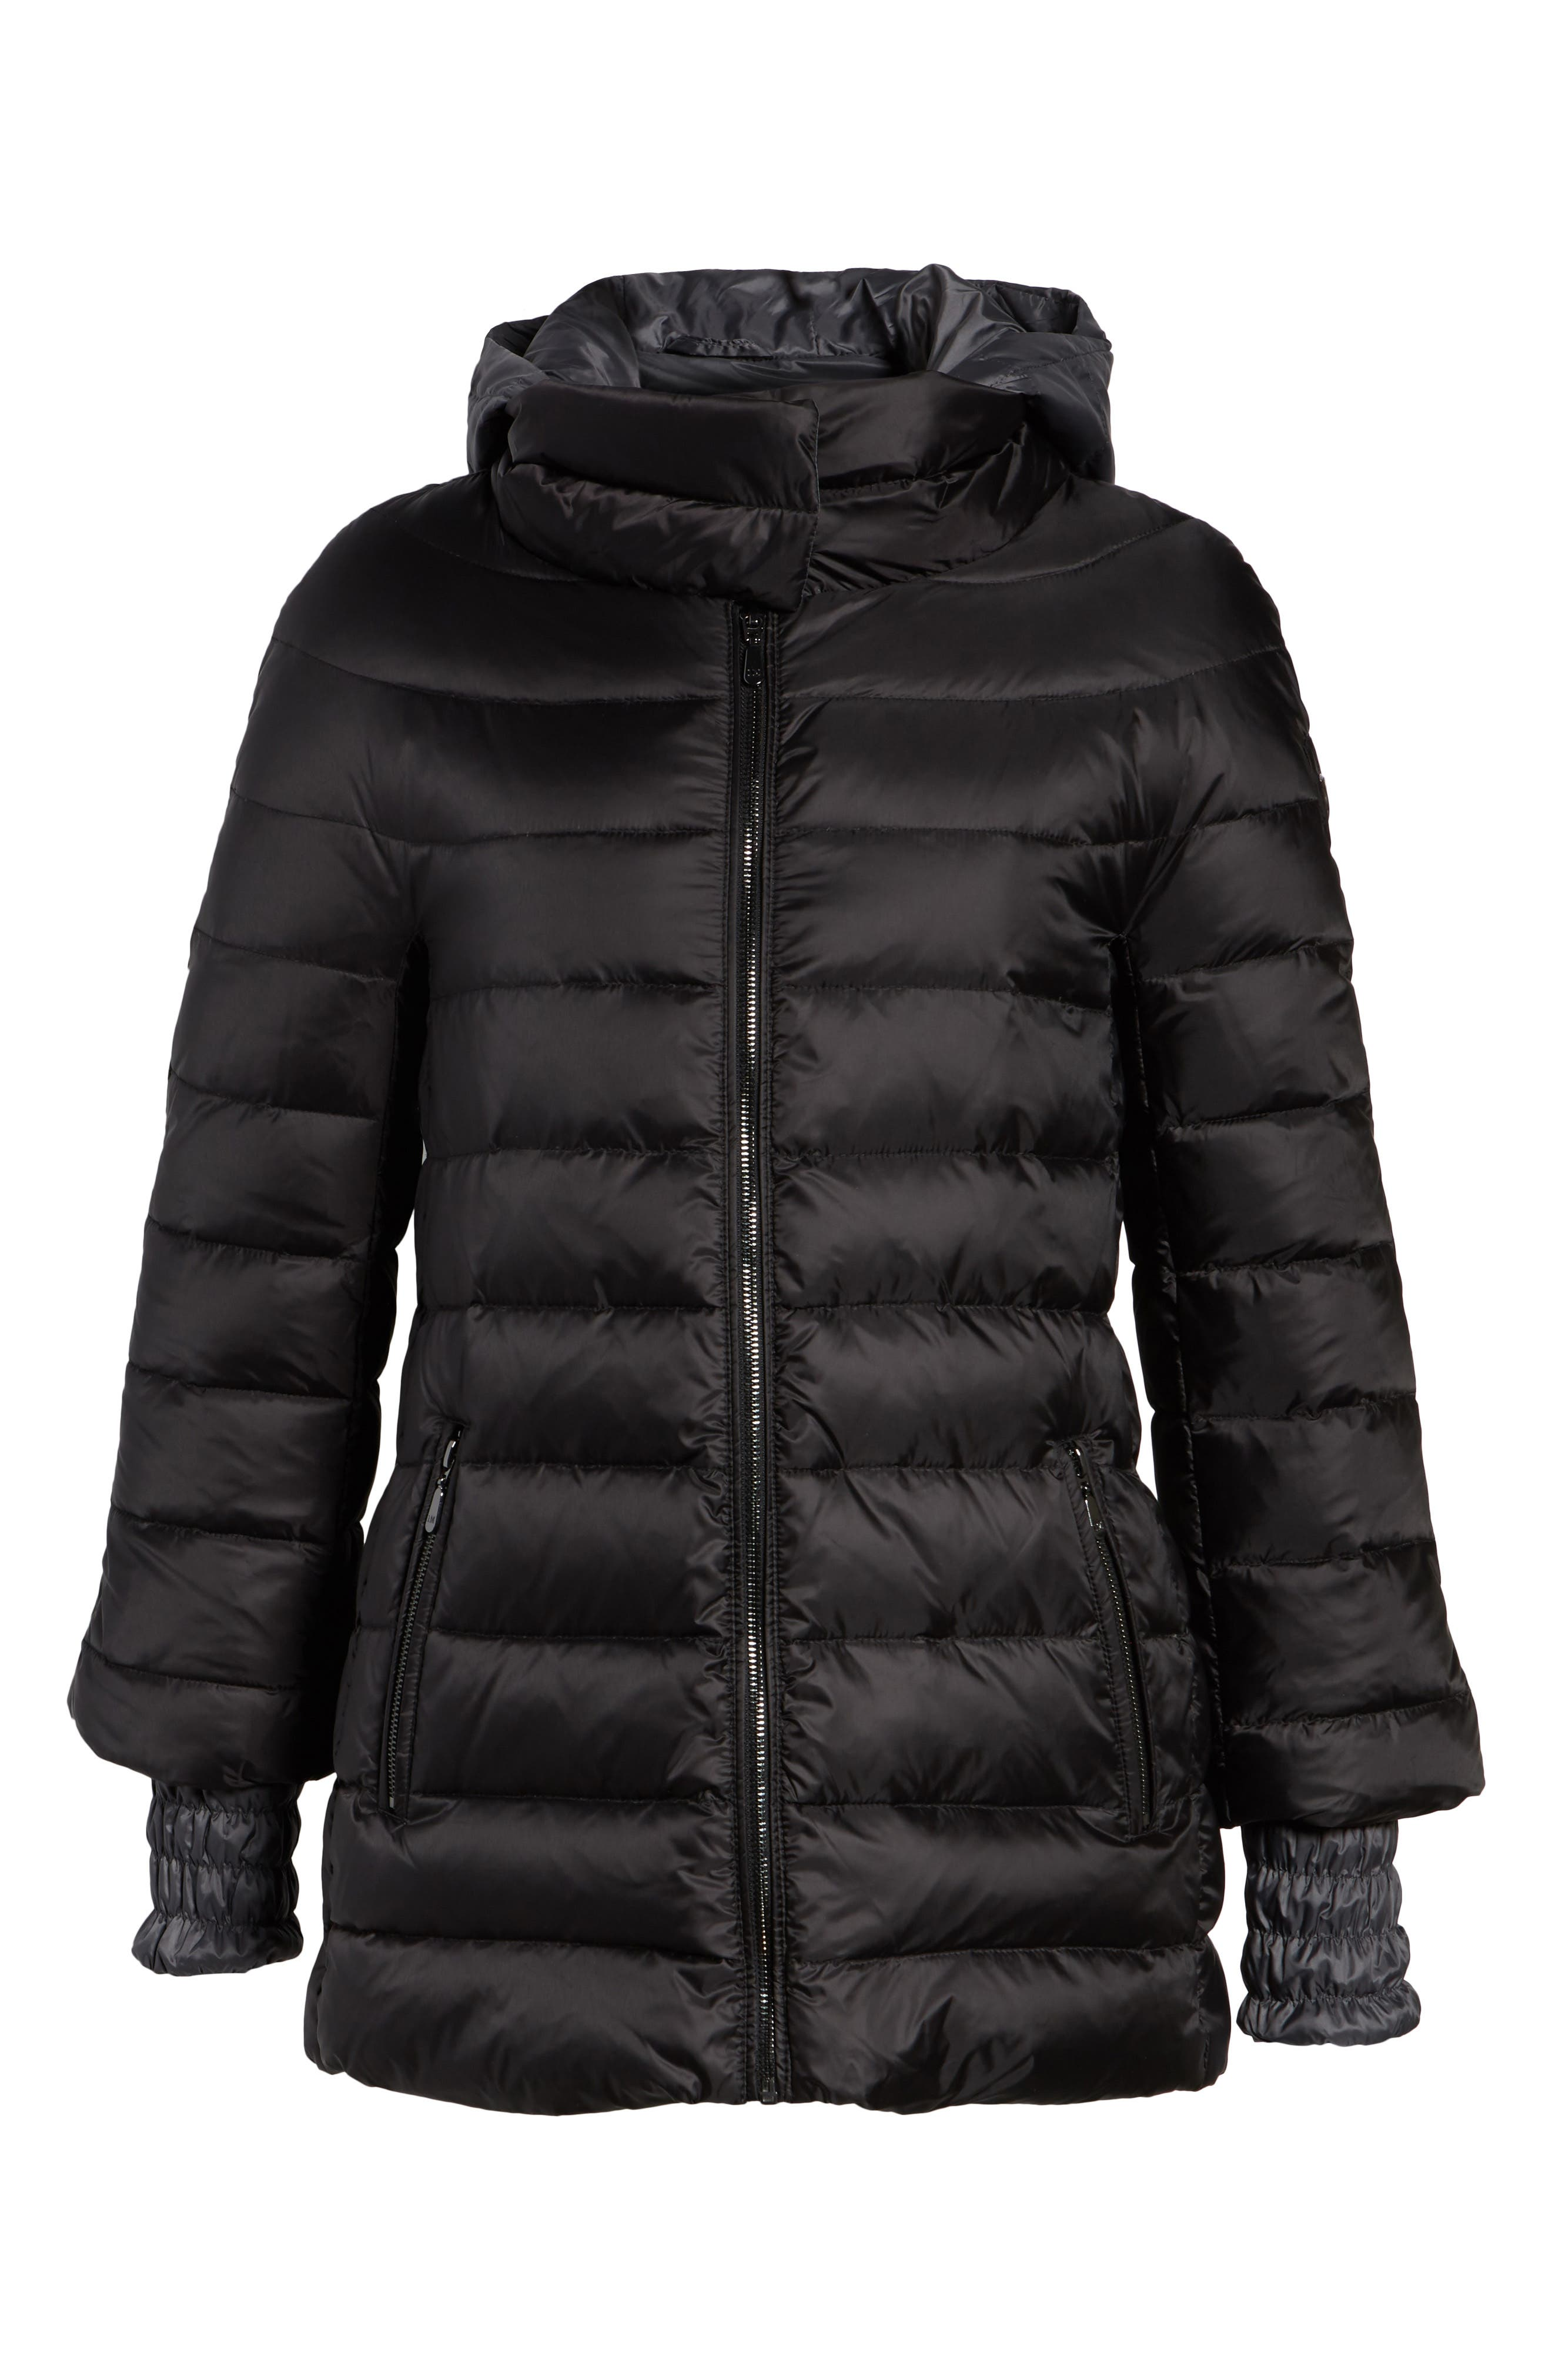 3-in-1 Layered Packable Quilted Down Coat,                             Alternate thumbnail 11, color,